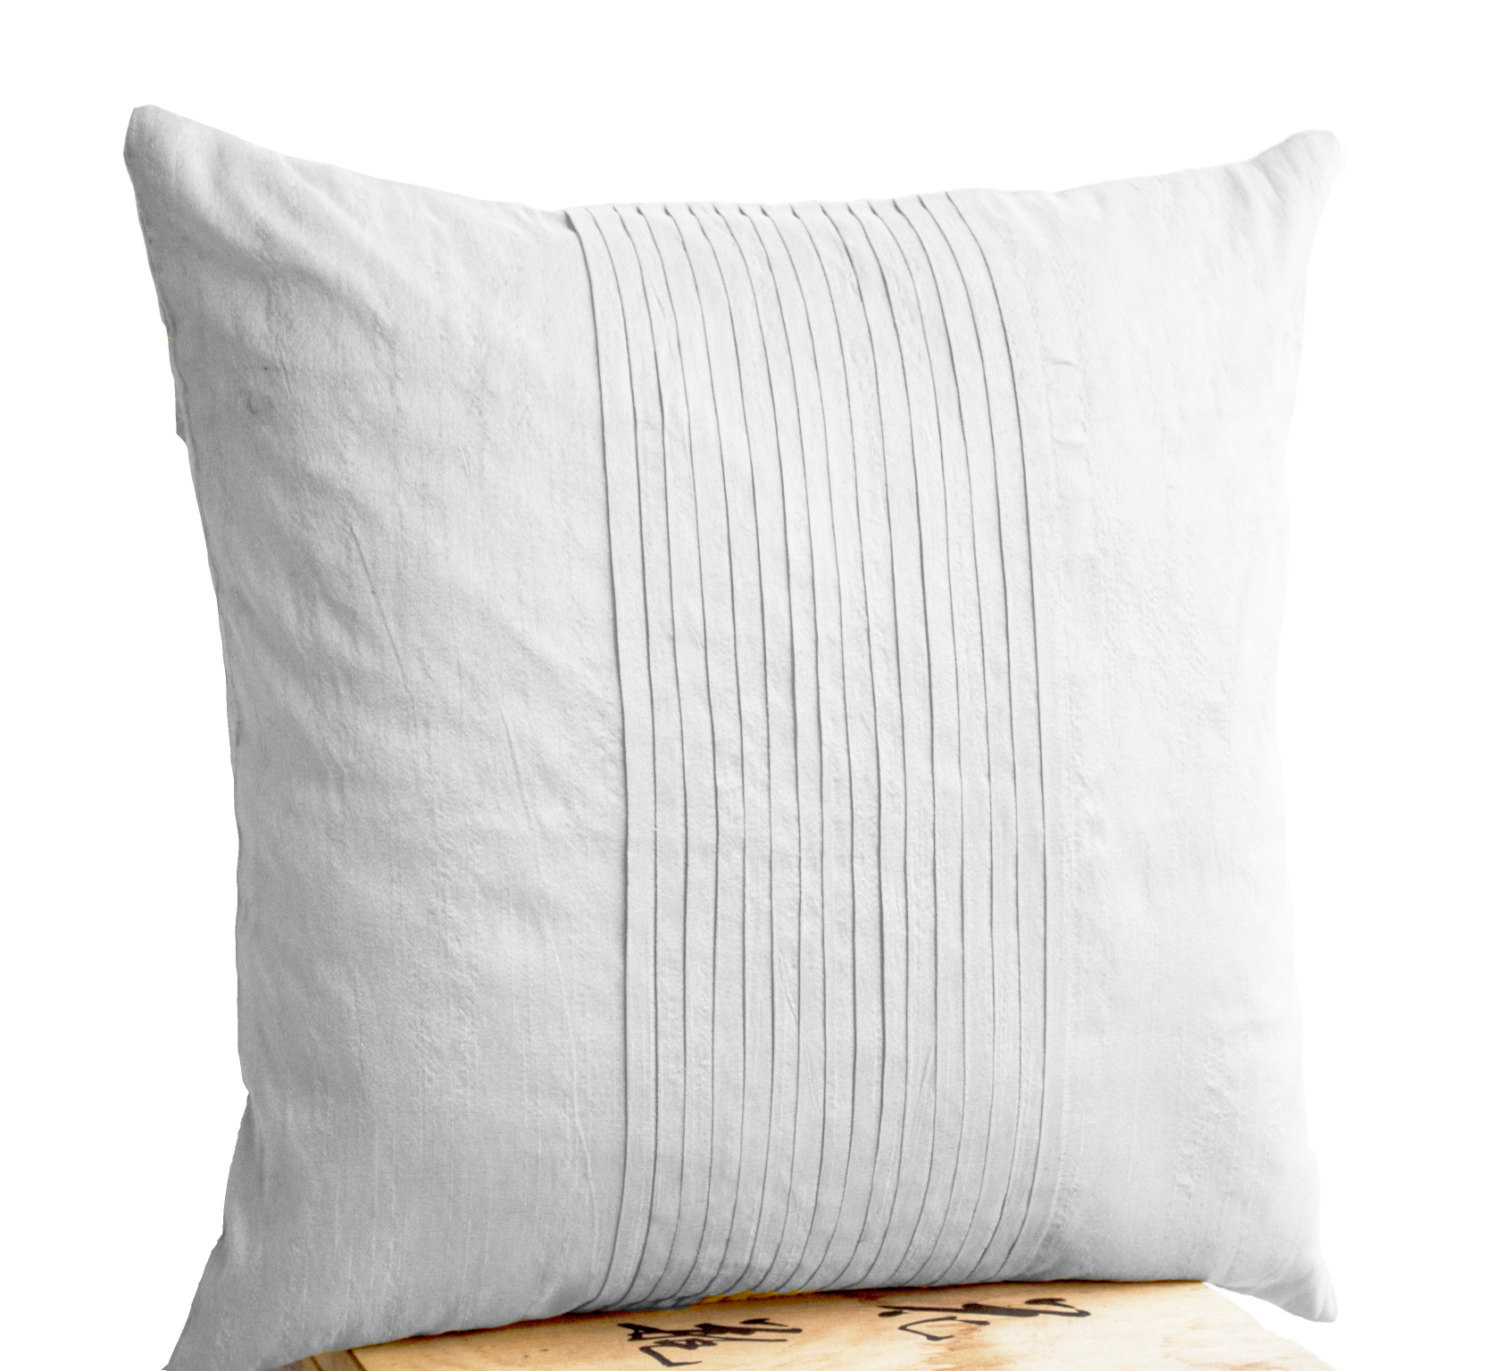 Throw Pillow White : White Silk Ripple Pillow Decorative Pillow White Pintuck Pillow Throw Pillow - Pillows